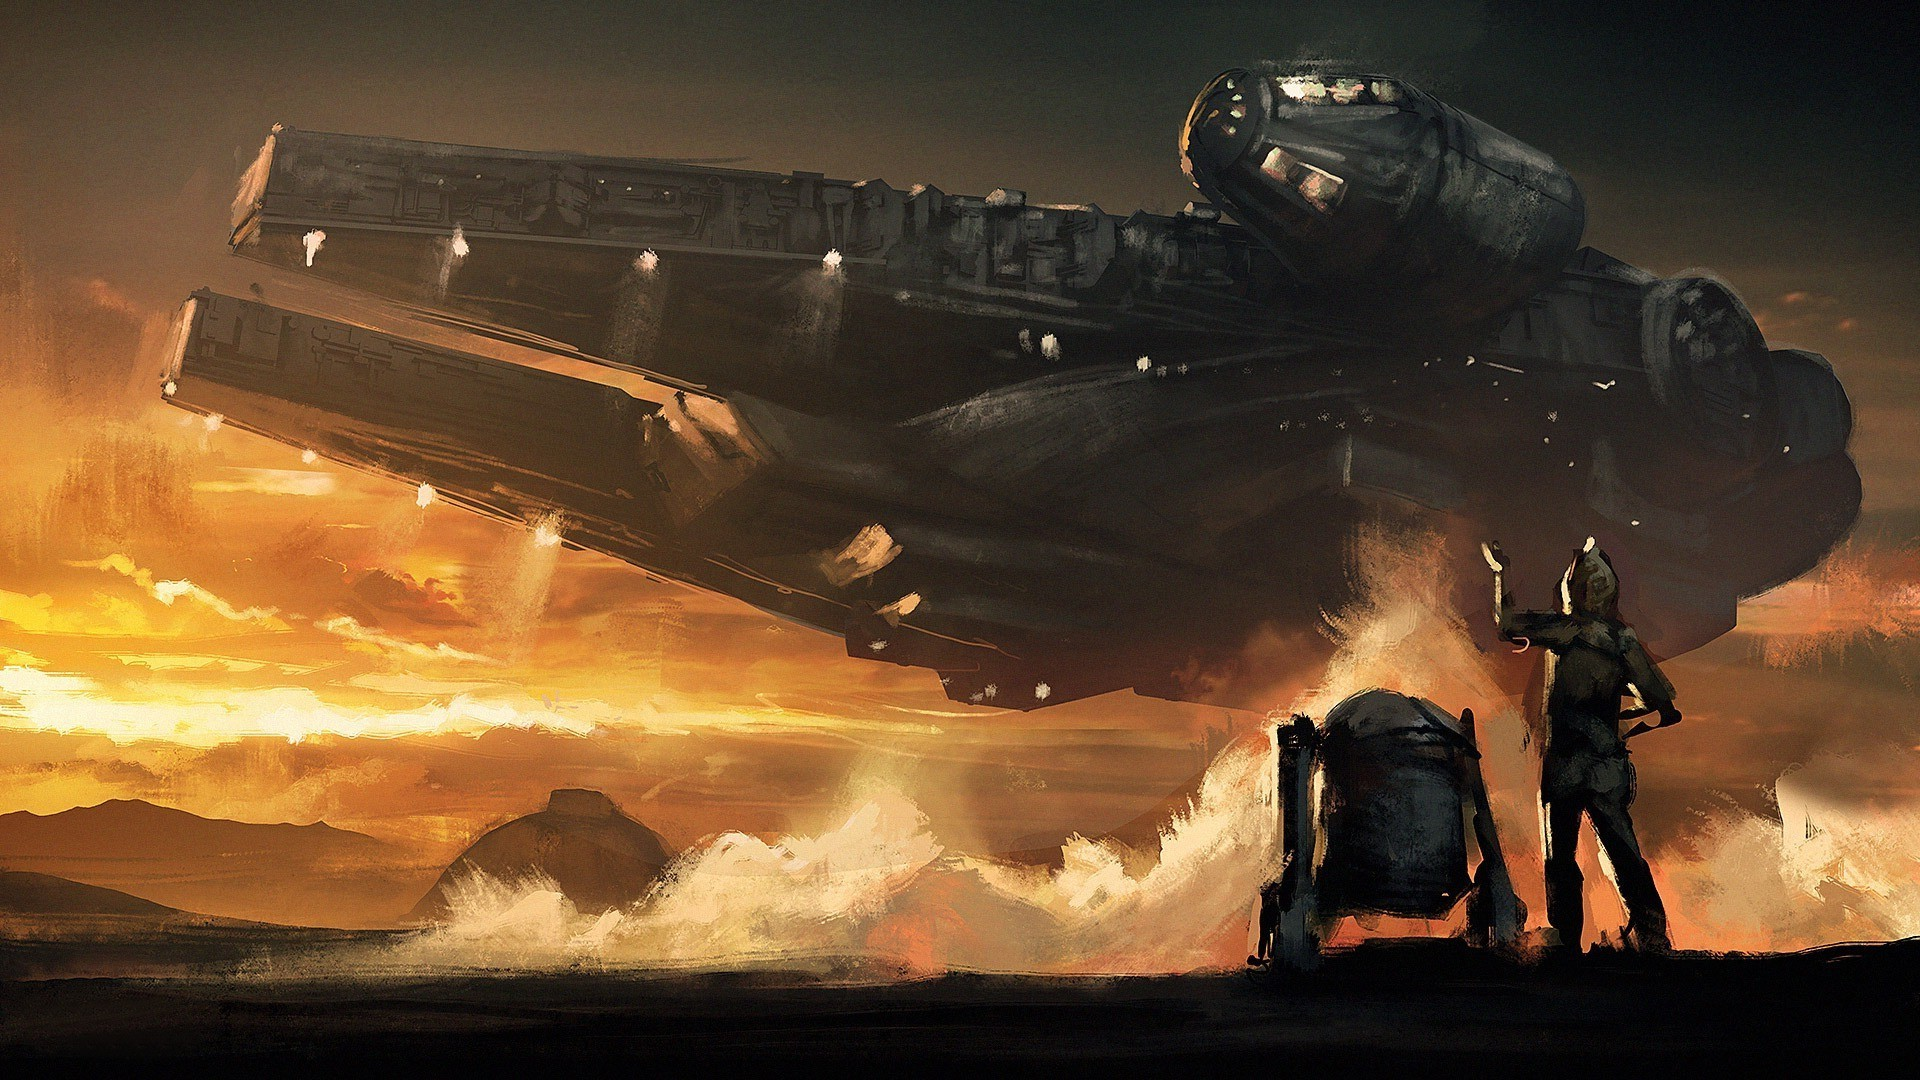 Star Wars, C 3PO, Millennium Falcon, R2 D2, Sunset, Clouds, Painting Wallpapers  HD / Desktop and Mobile Backgrounds